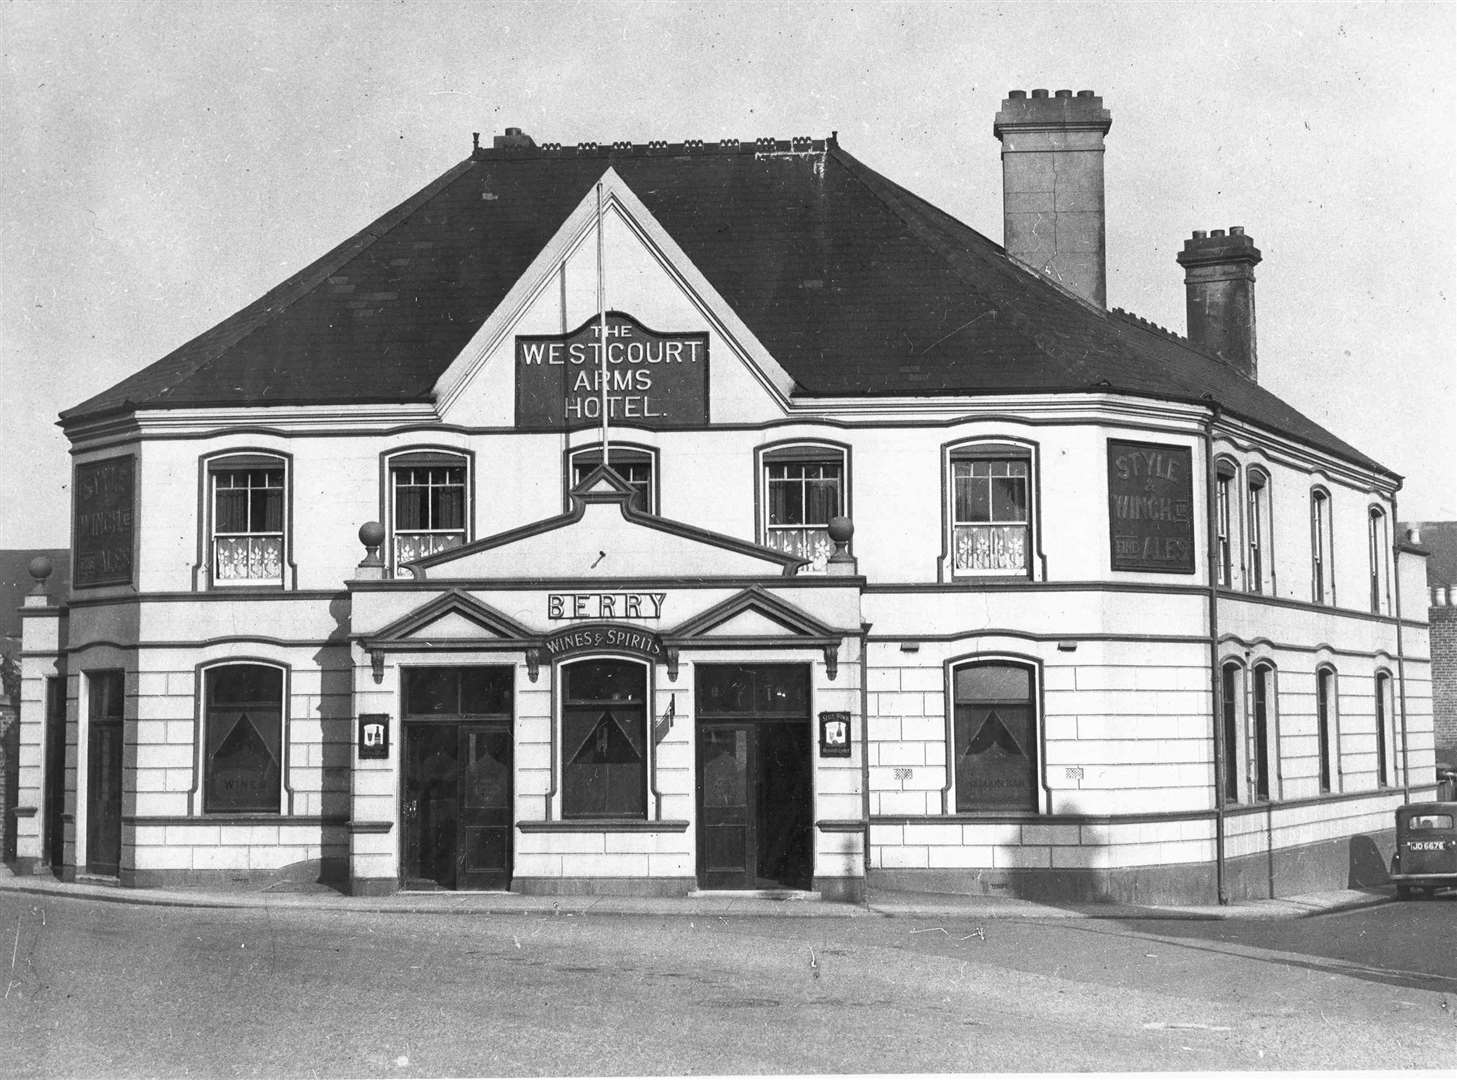 The Westcourt Arms in 1932